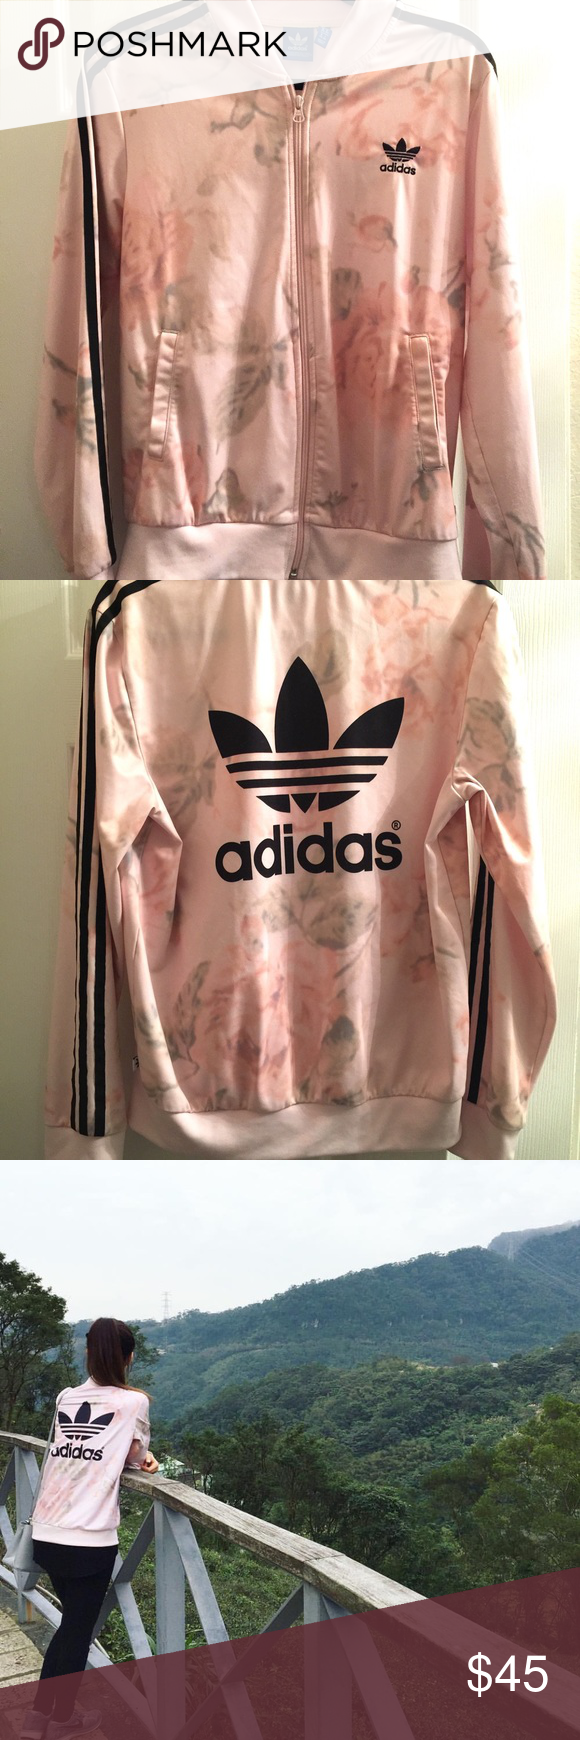 Pink floral adidas track jacket Pink floral adidas track jacket! Sold out and only worn a few times. Got a size medium since they didn't have a small but fits just fine! Adidas Jackets & Coats